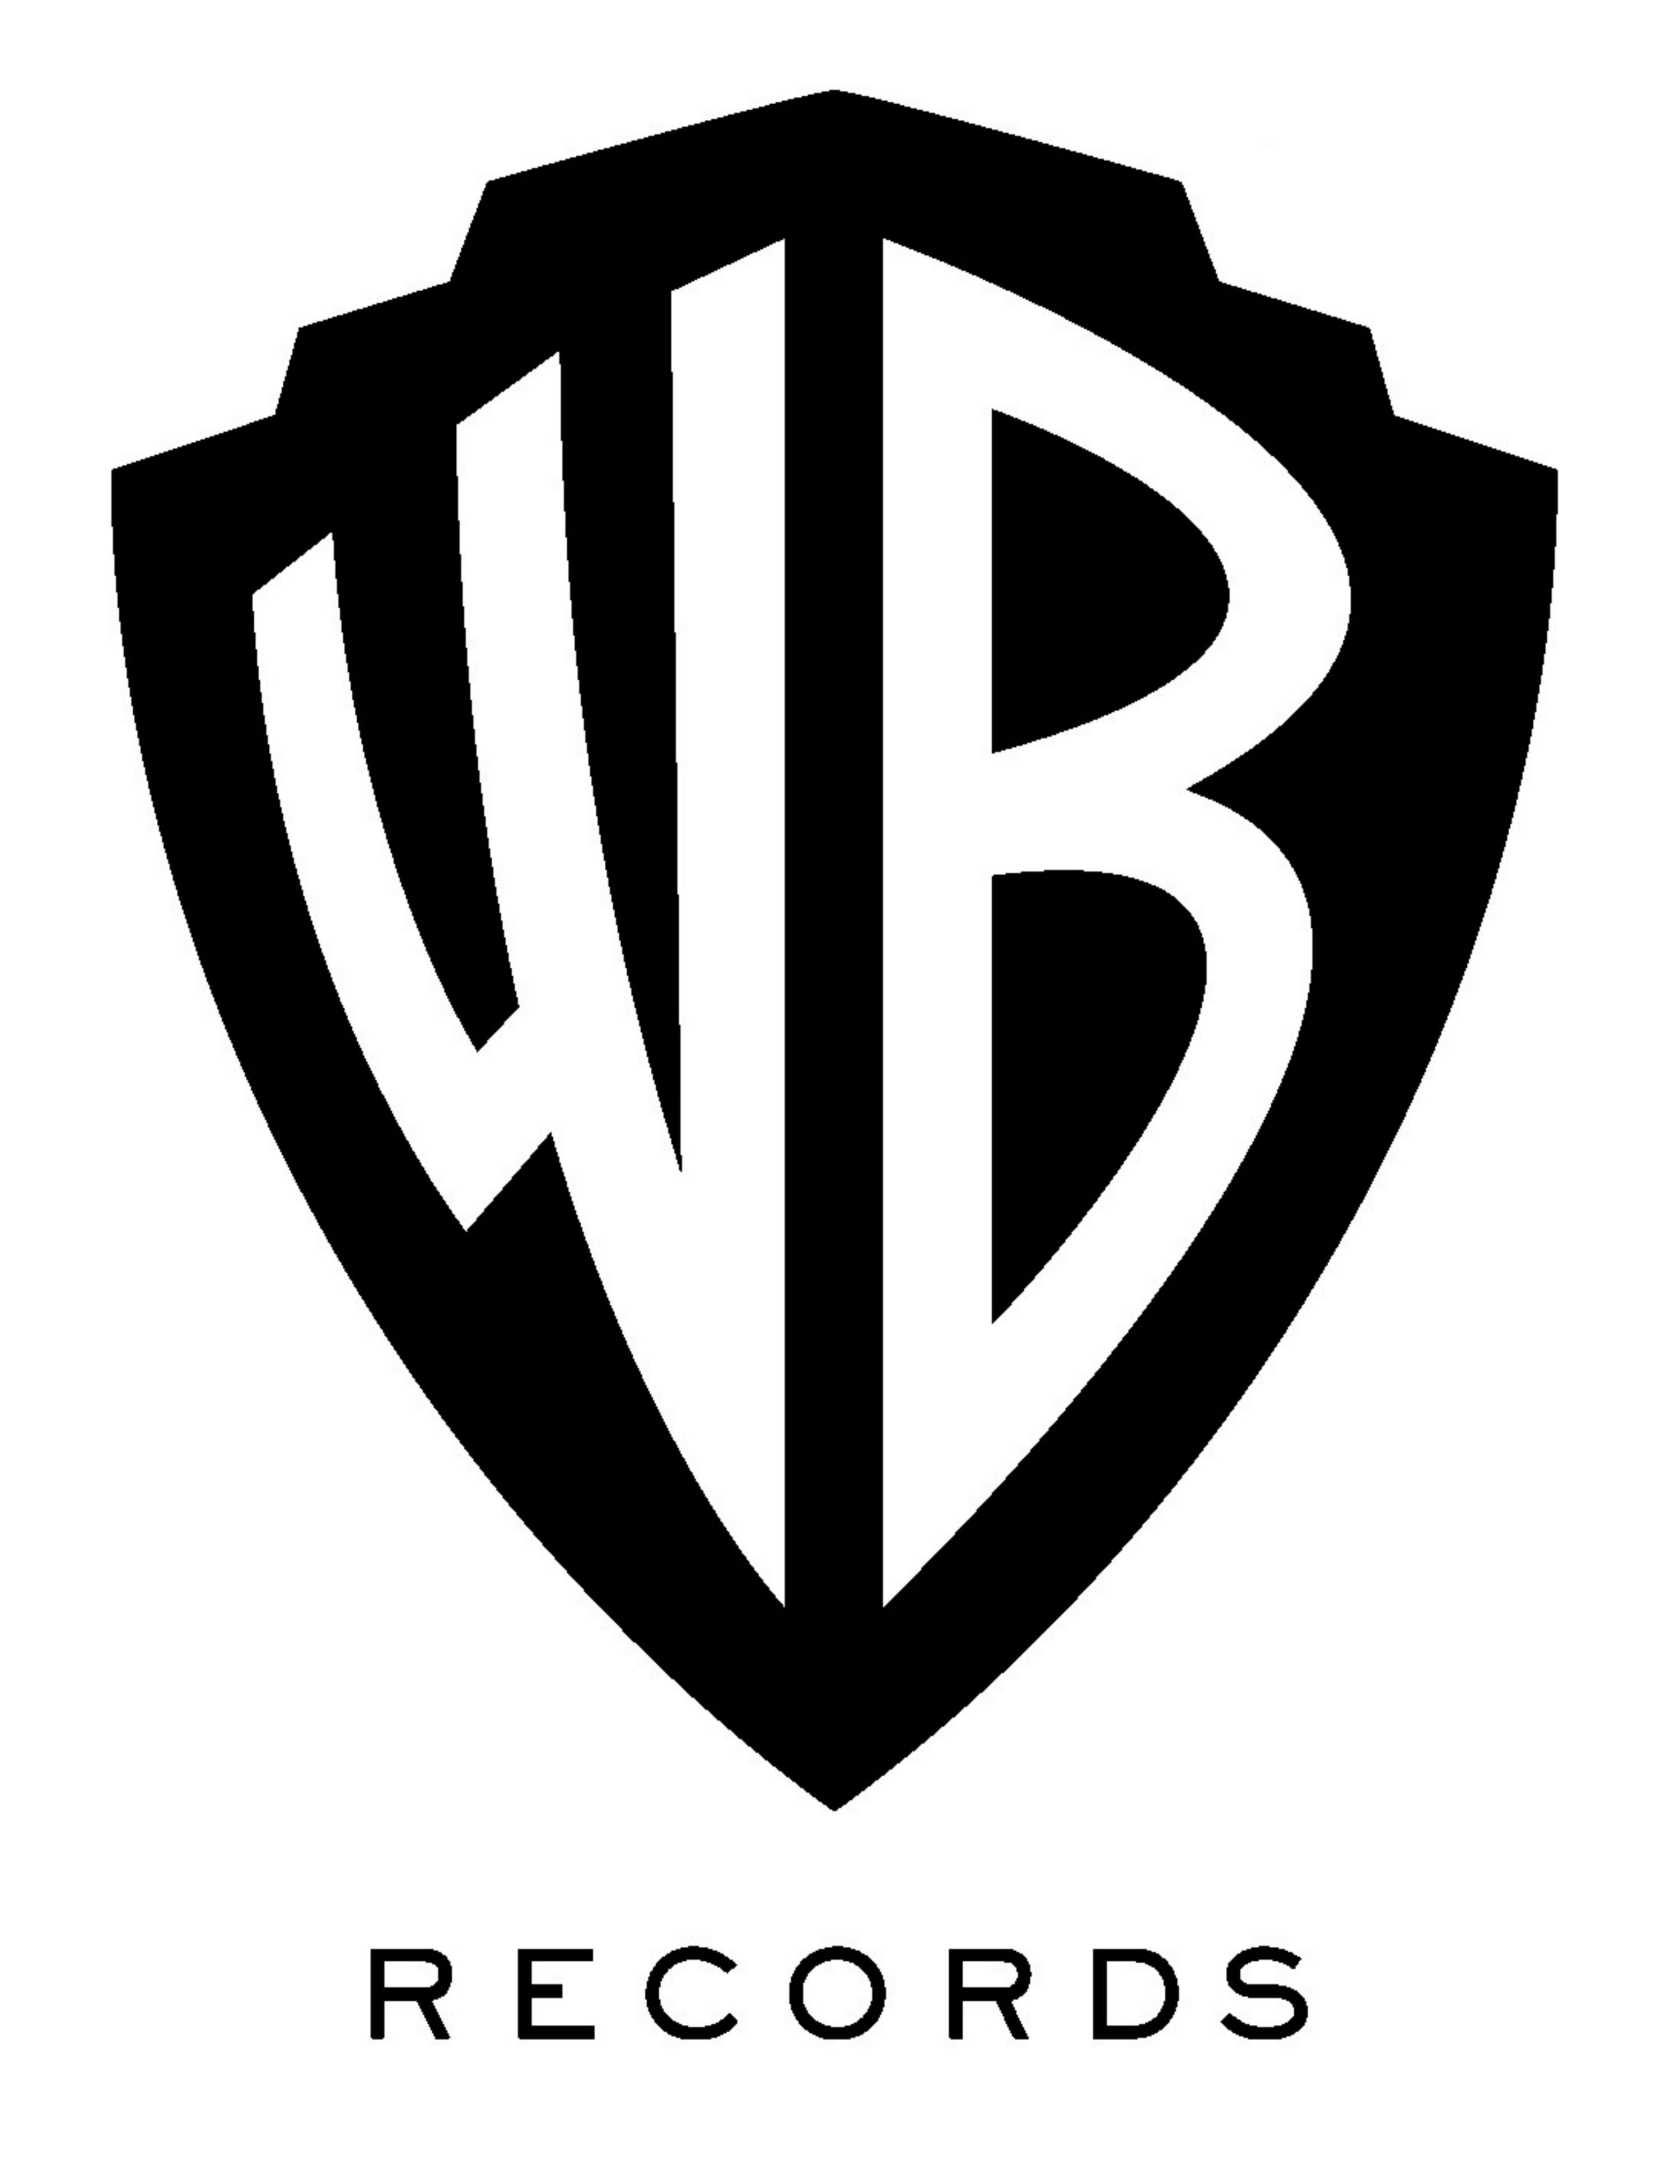 This image is important to me because warner bros. records